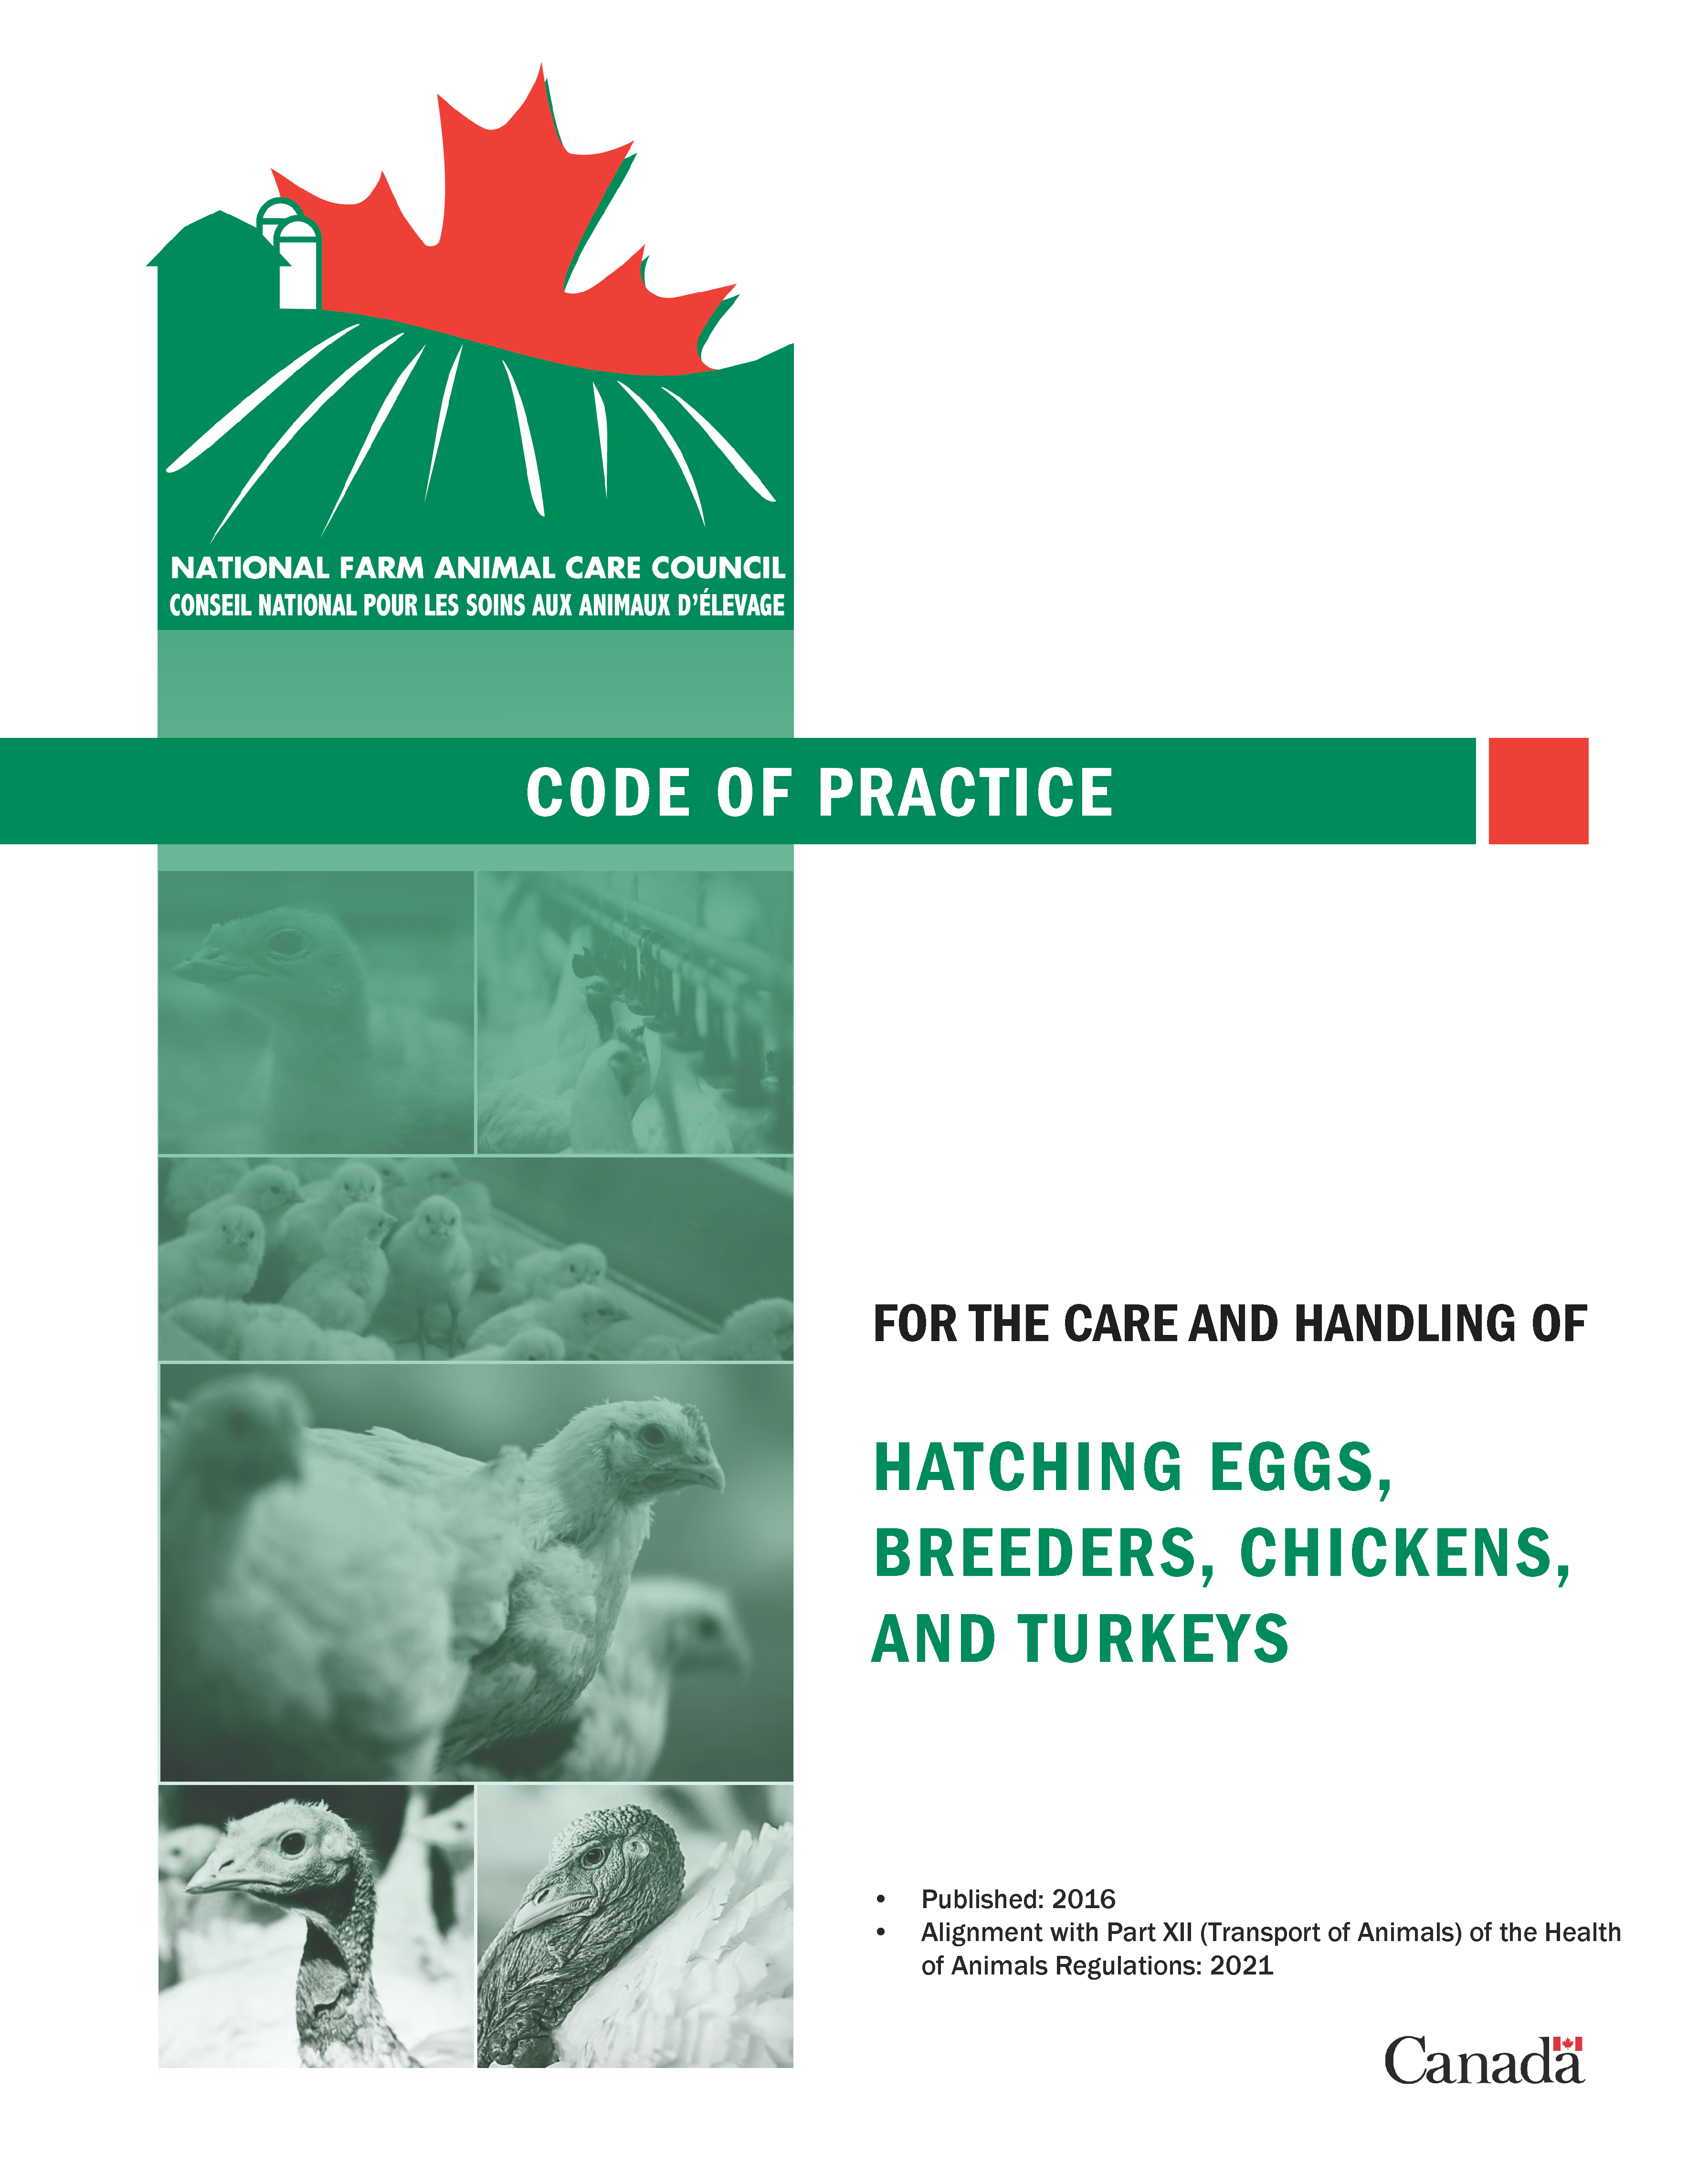 chickens turkeys and breeders codes of practice for the care and